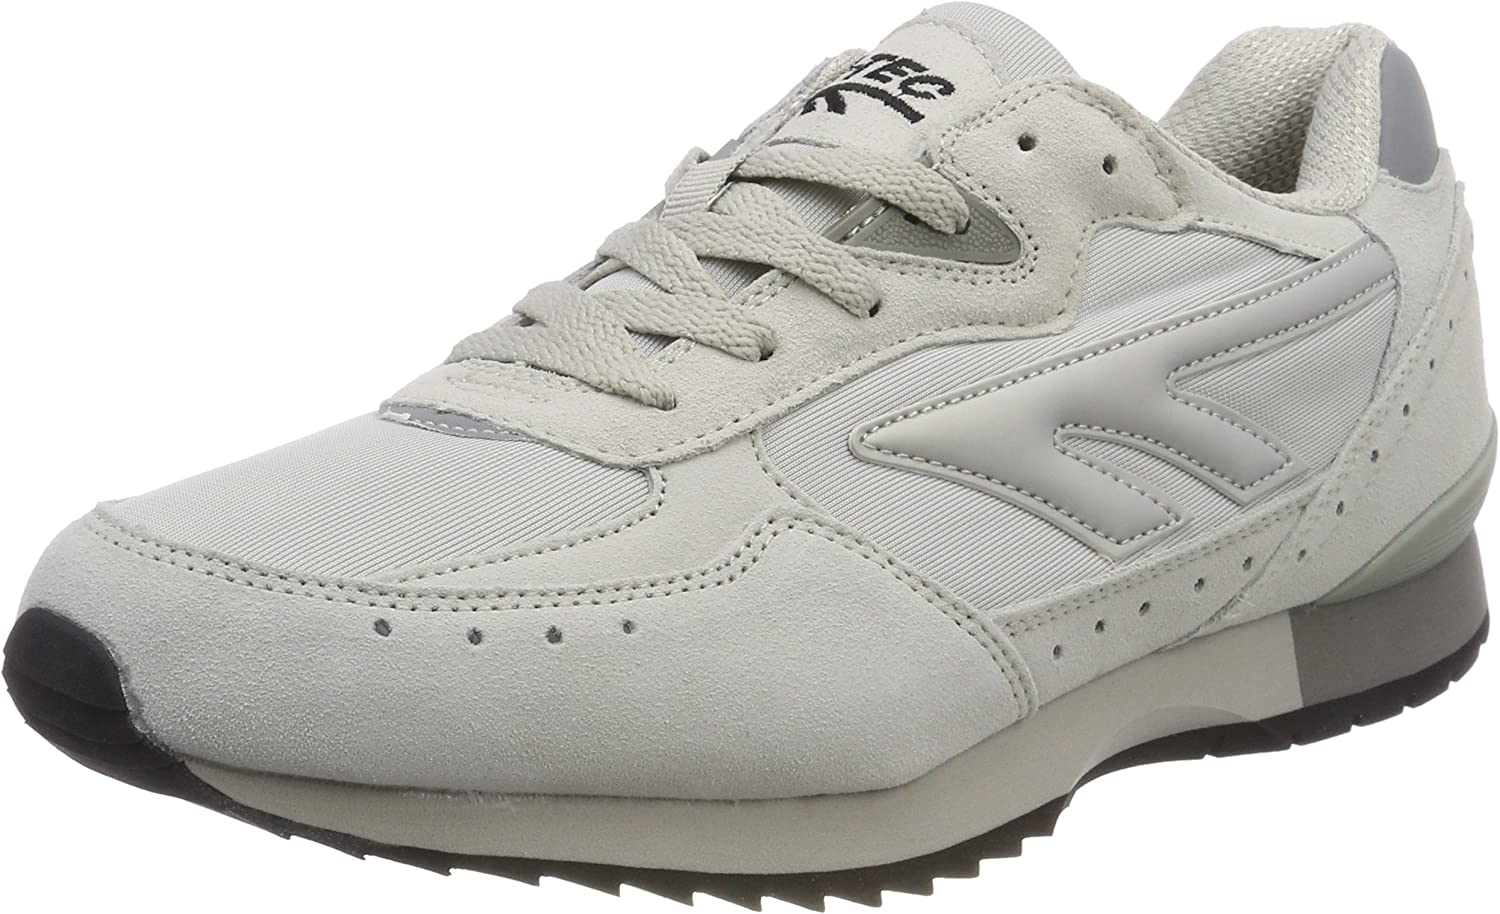 Hi-Tec Mens Silver Spirit Running Shoes Trainers Sneakers Grey White Sports